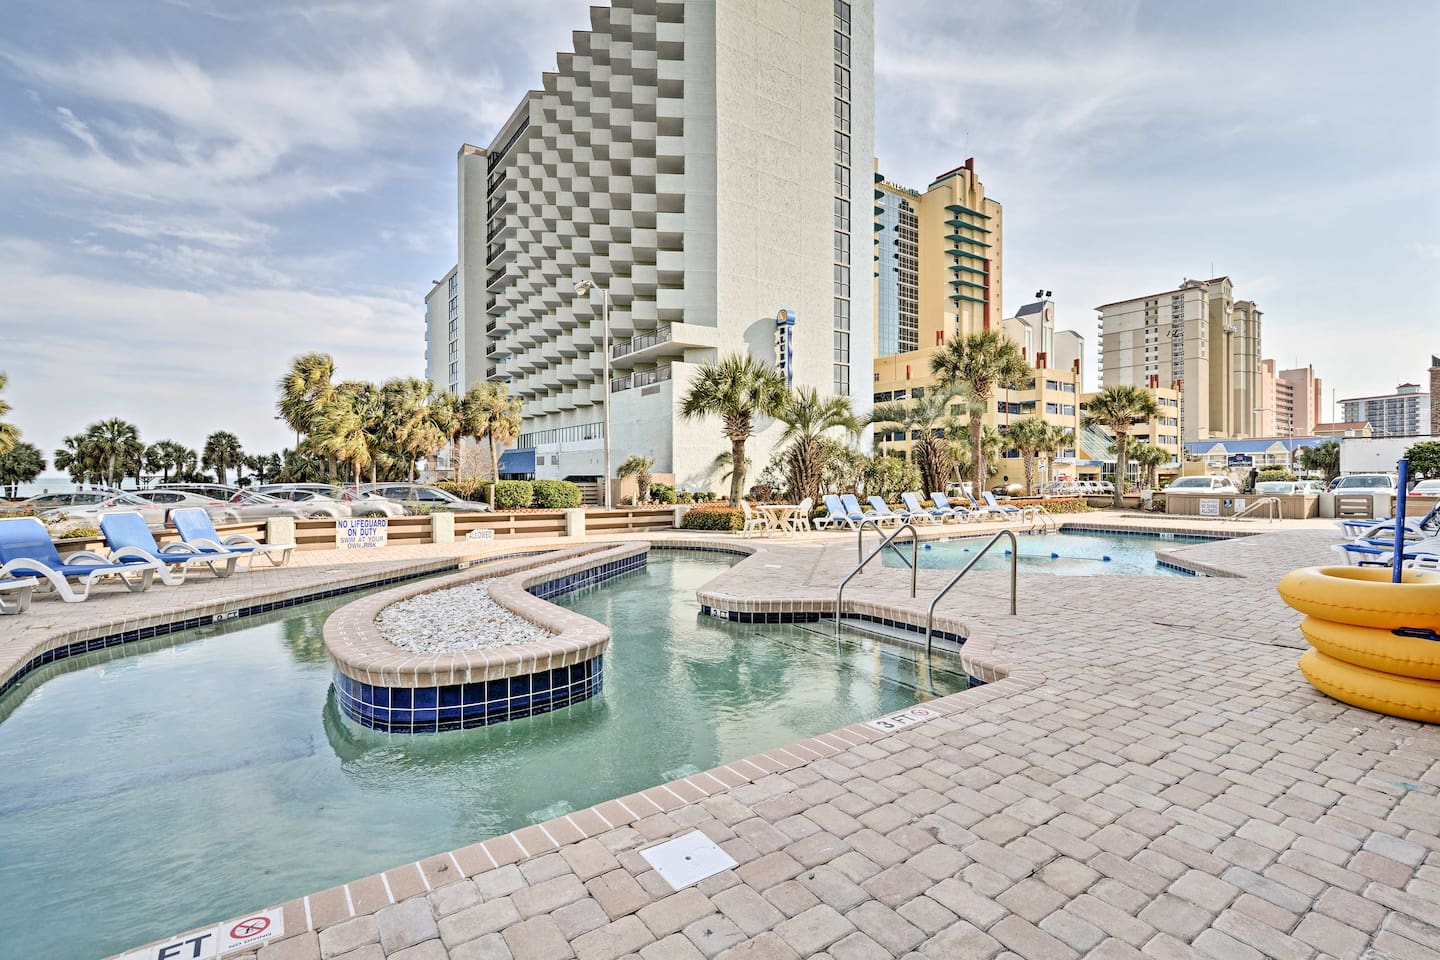 Escape to this centrally located Myrtle Beach vacation rental condo!